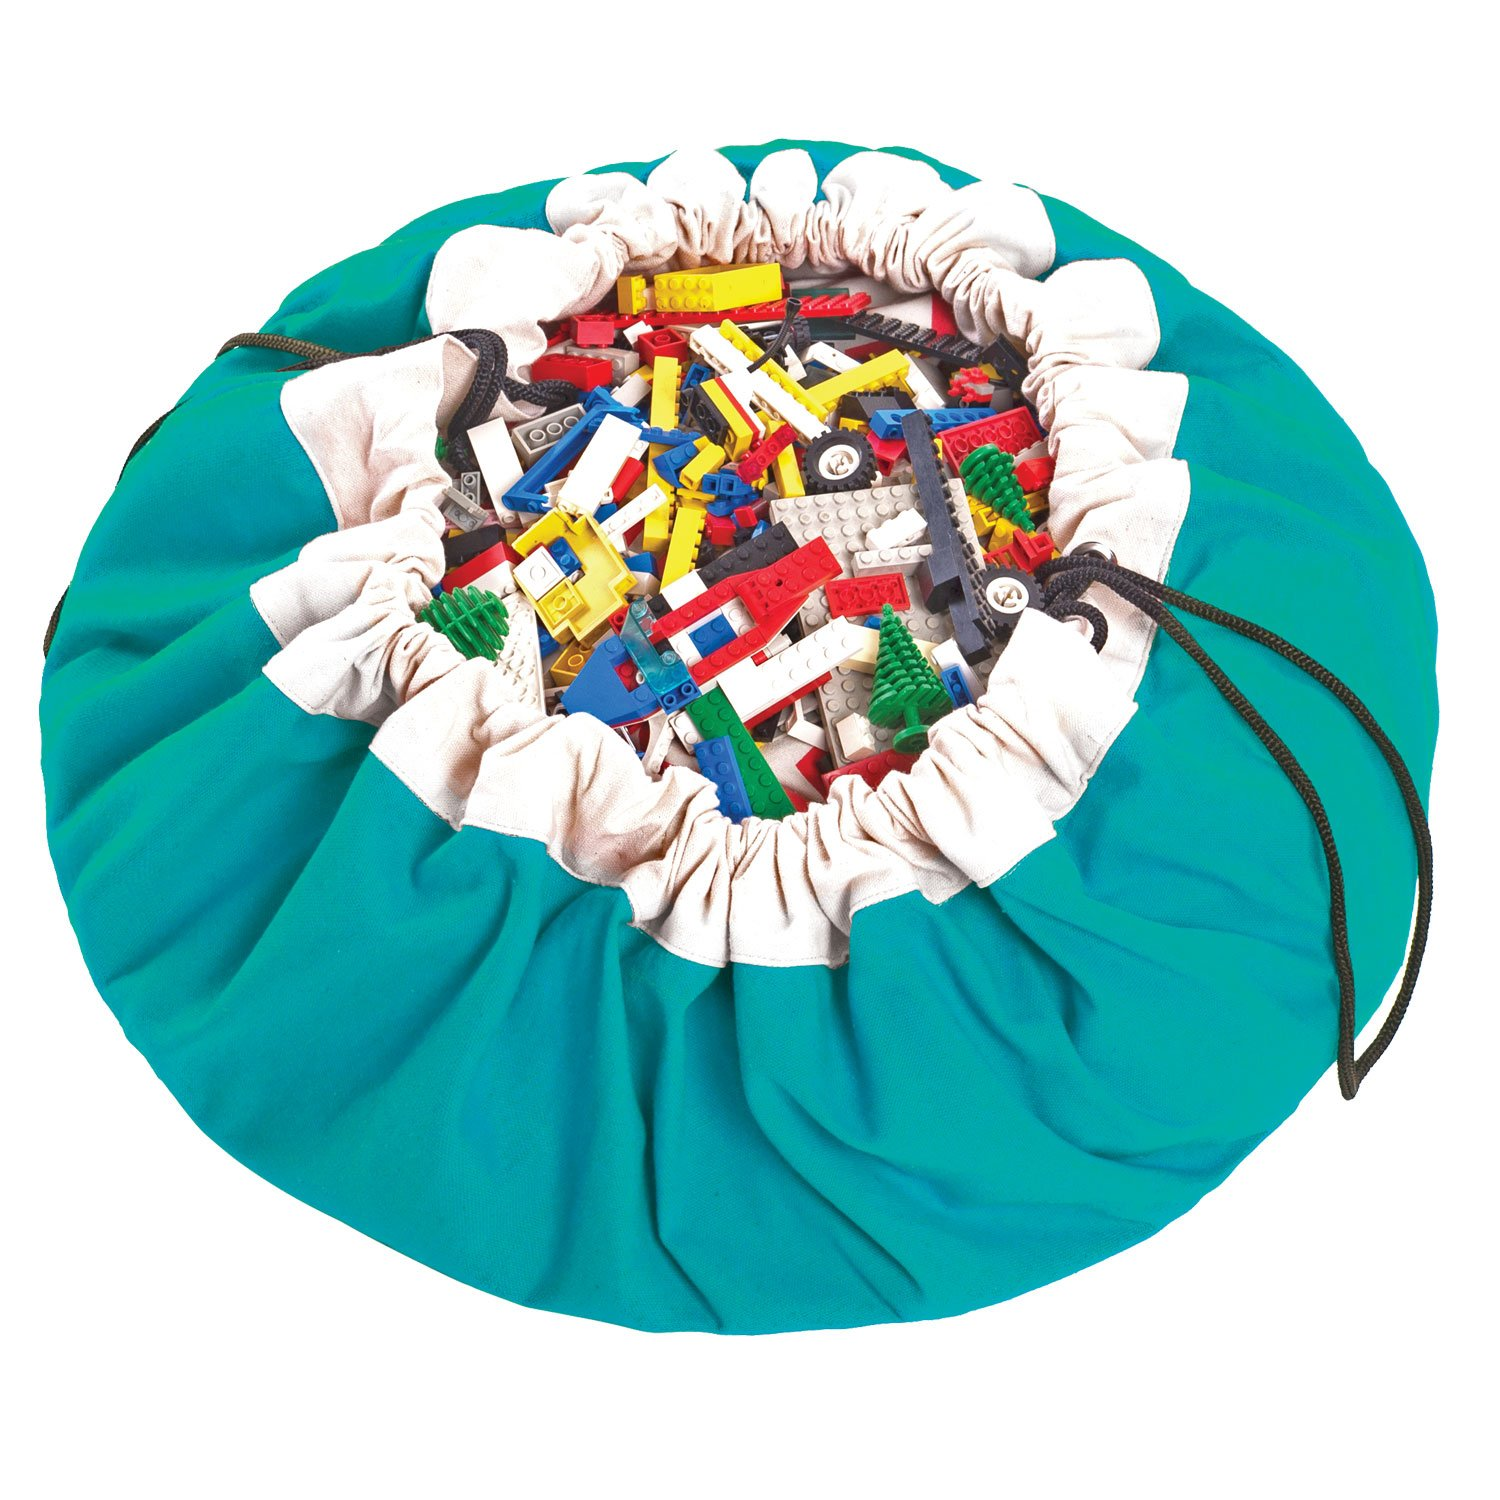 Play Mat and Toy Storage Bag - Durable Floor Activity Organizer Mat - Large Drawstring Portable Container for Kids Toys, Books - 55'', Turquoise